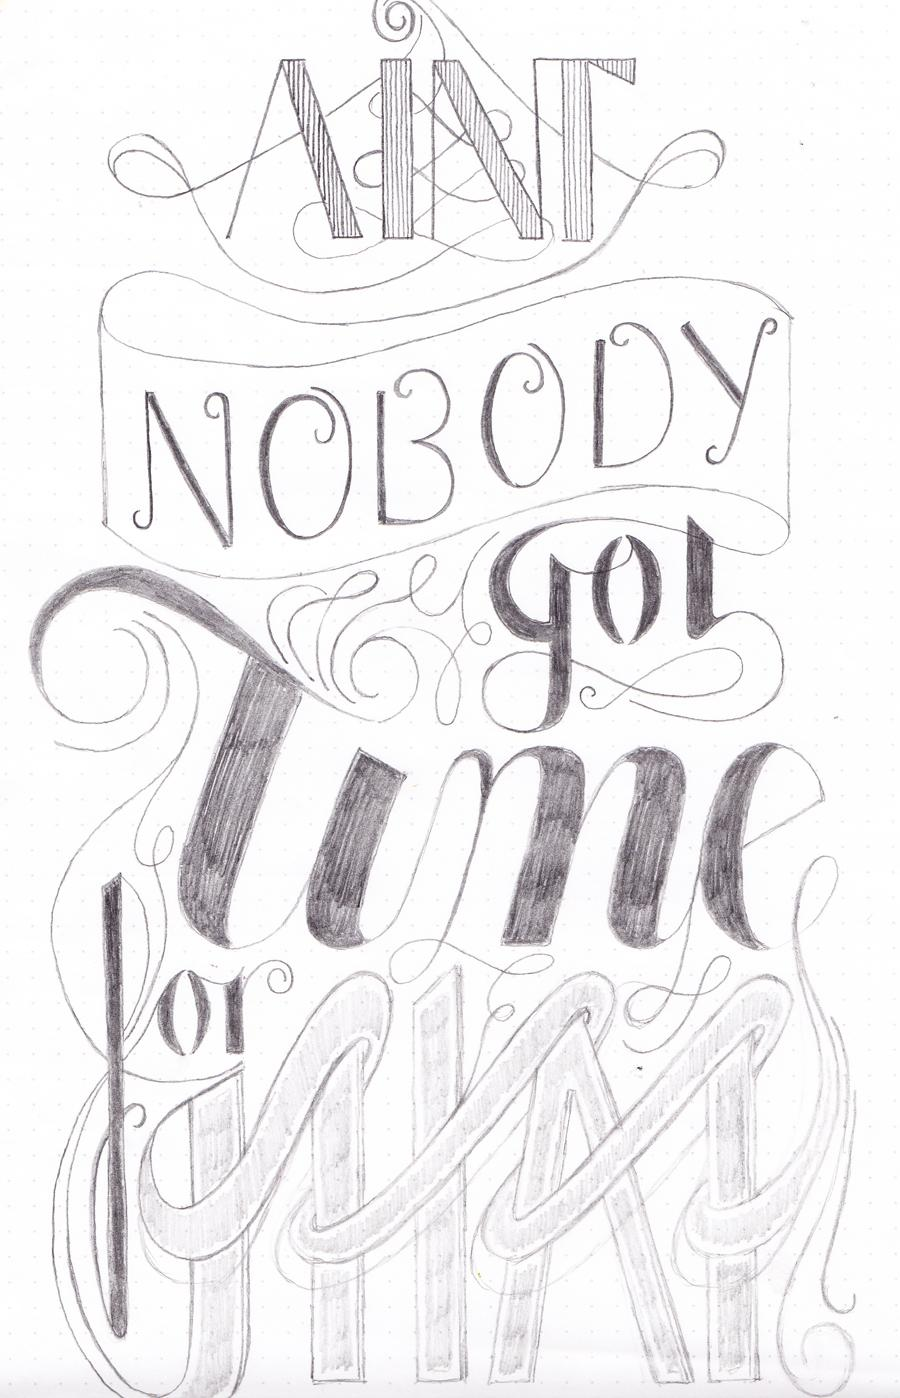 Ain't Nobody Got Time For That. - image 3 - student project